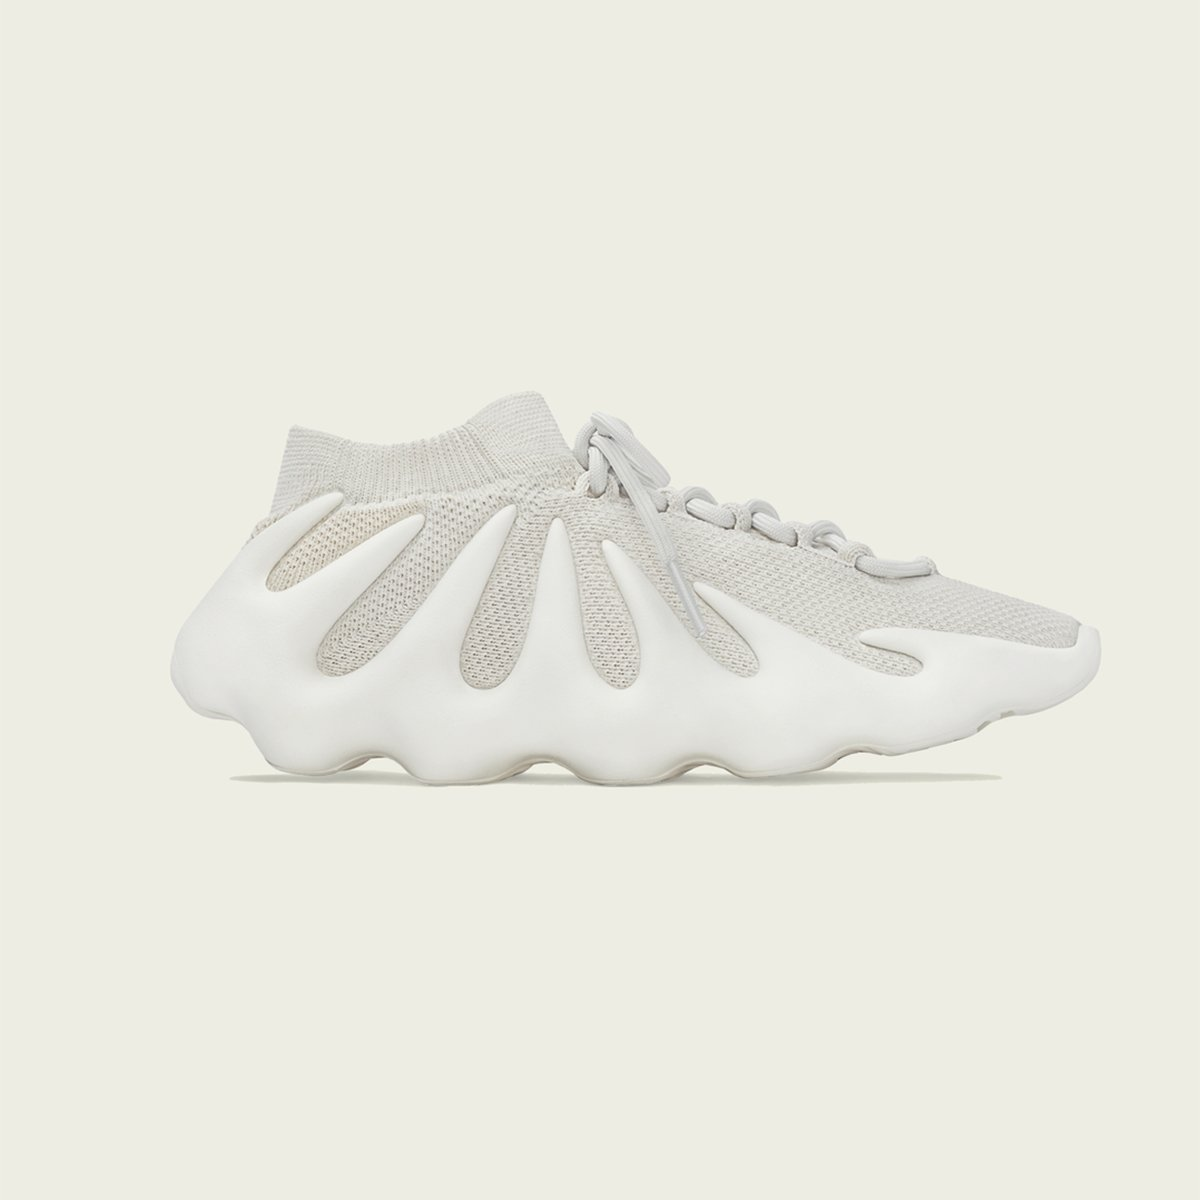 Overkill online raffle live for the adidas Yeezy 450